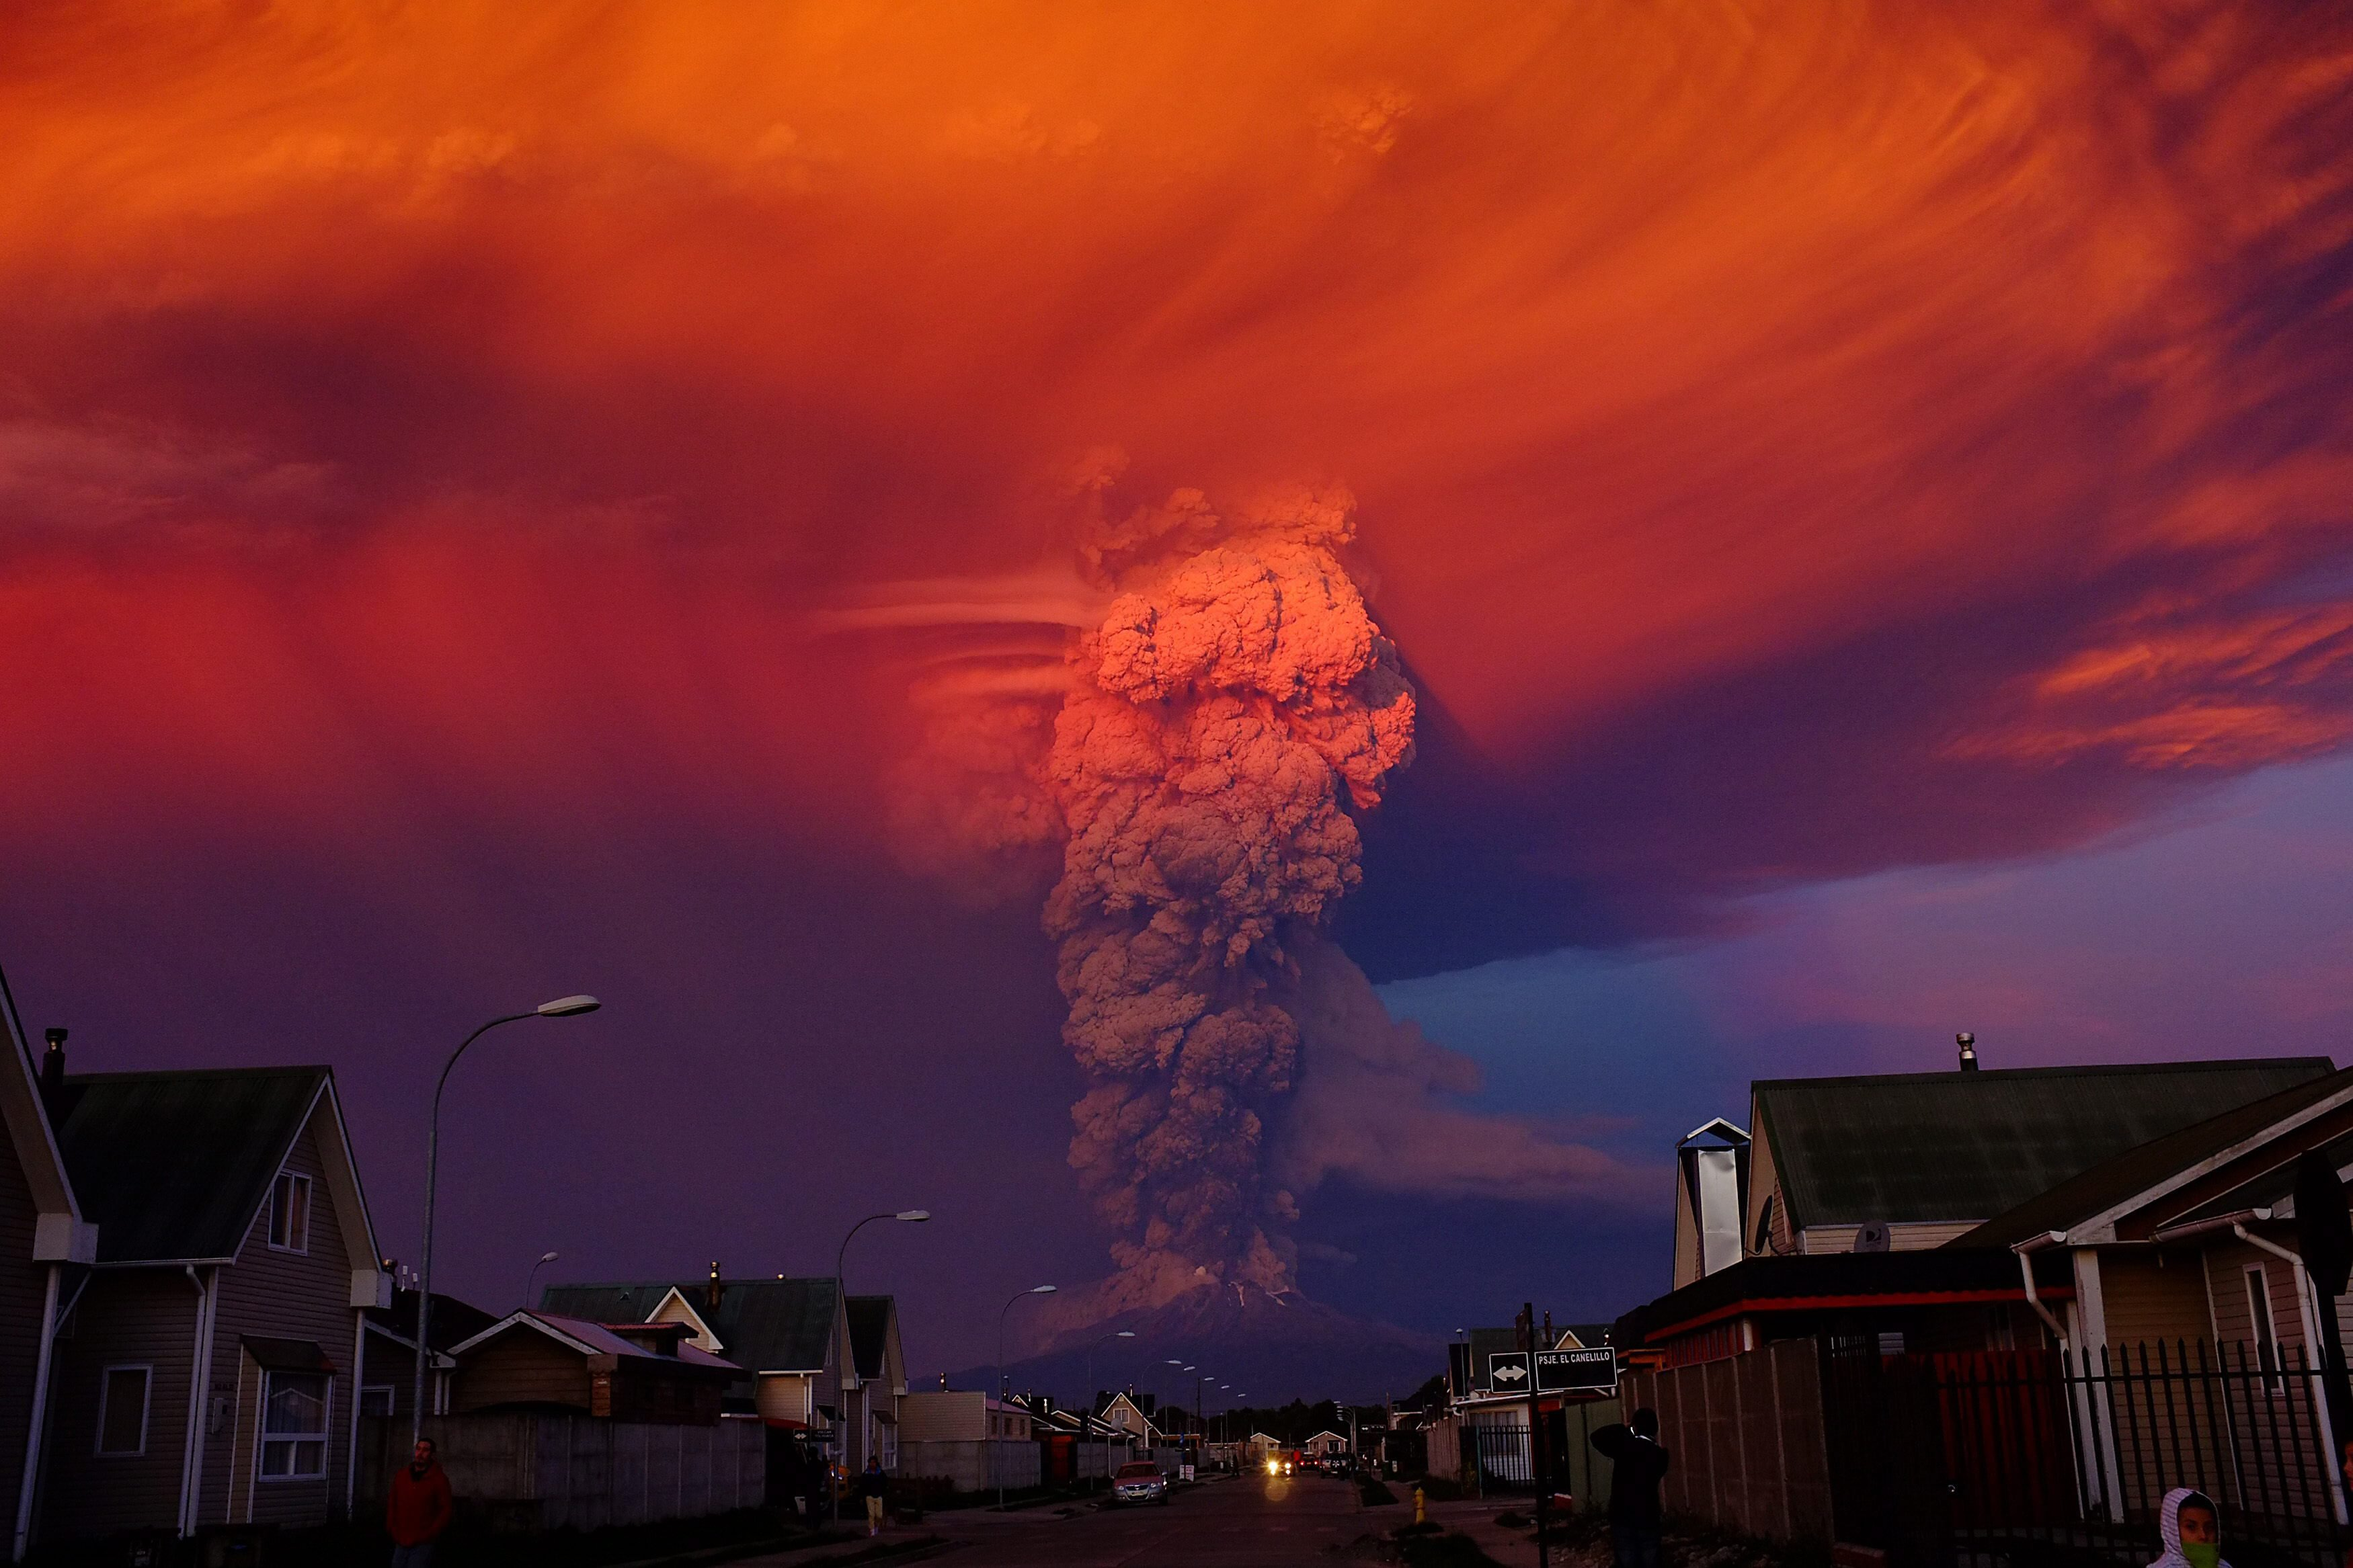 The Chilean Calbuco volcano seen from Puerto Montt, located 600 miles south of Santiago de Chile, Chile on April 22, 2015. The eruption caused a column of smoke over ten miles high. Authorities declared a red alert and ordered the evacuation of around 1500 residents in the area surrounding the volcano.